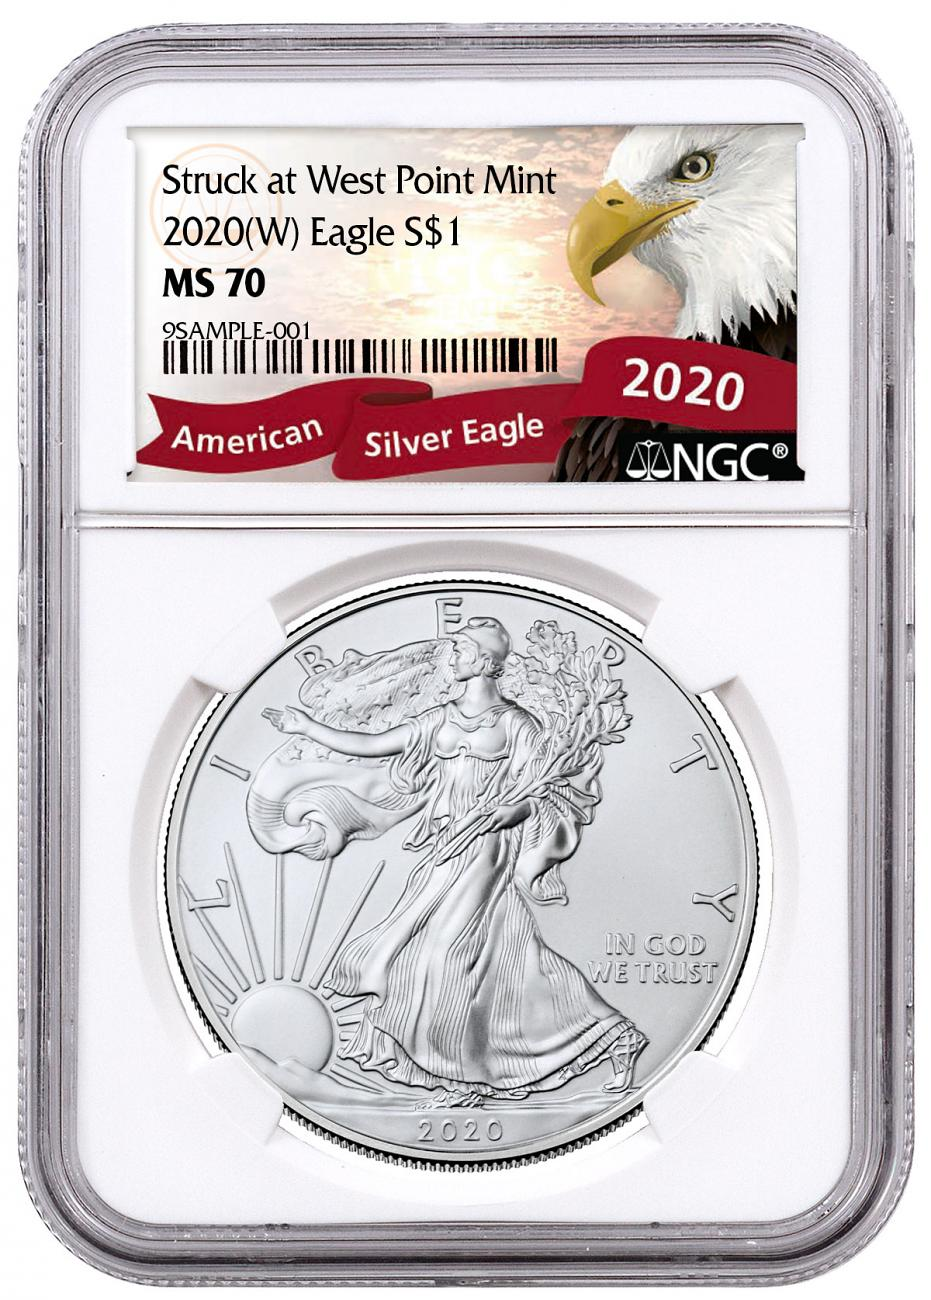 2020-(W) 1 oz Silver American Eagle Struck at West Point Mint NGC MS70 Exclusive Eagle Label